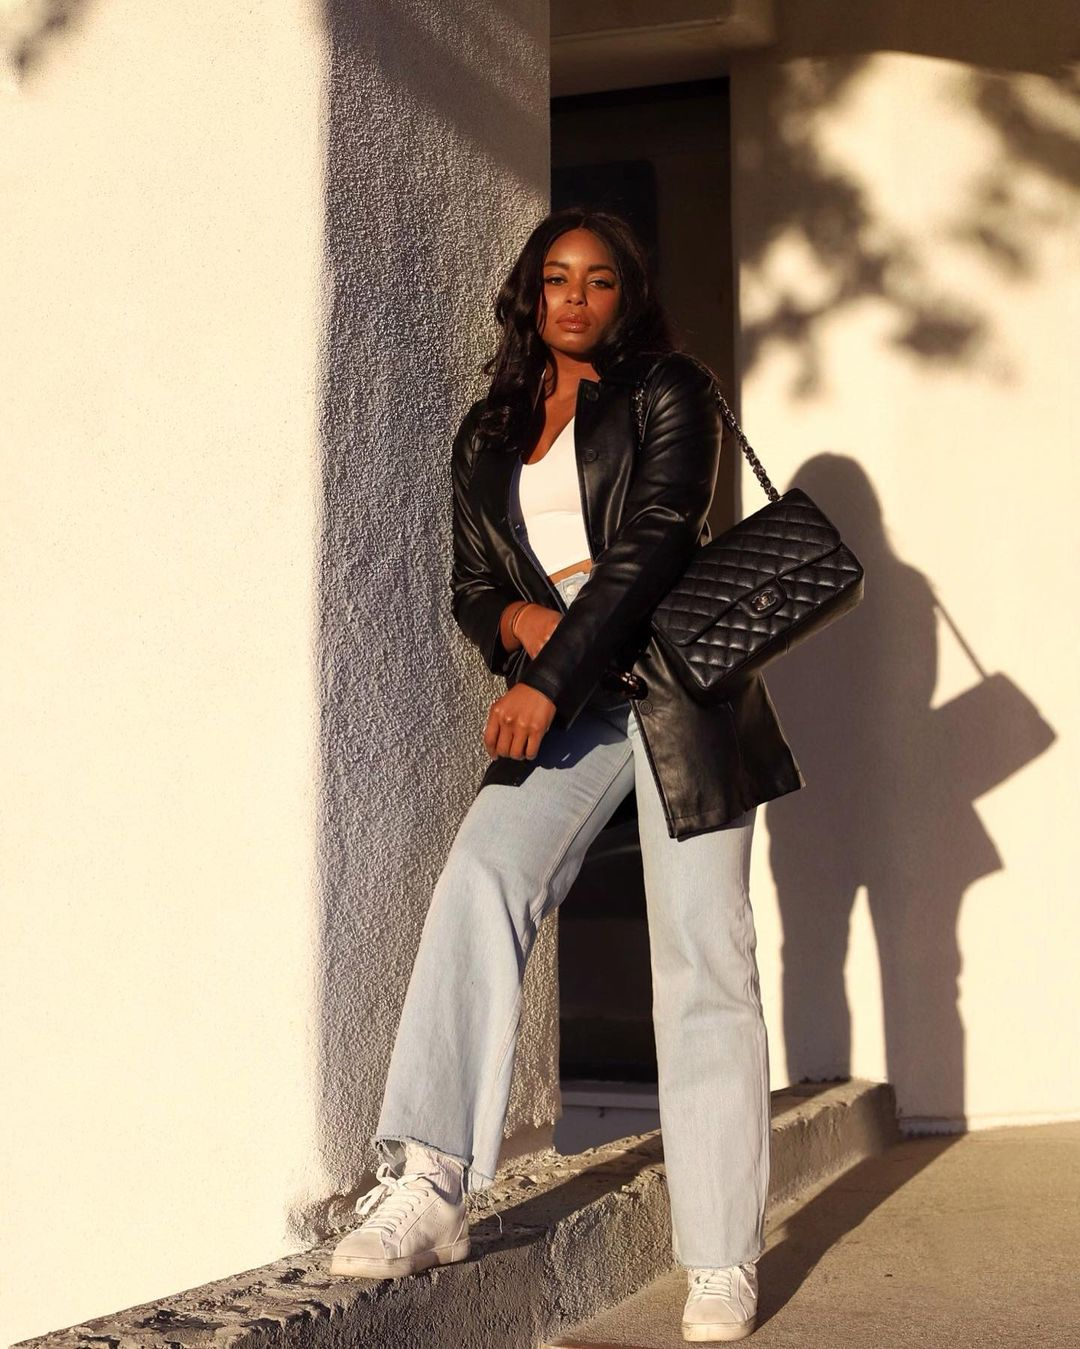 Faux-leather blazer, white cropped racerback tank top, light wash straight leg denim, white tennis sneakers and Chanel classic flap quilted bag - Stores like Zara outfit